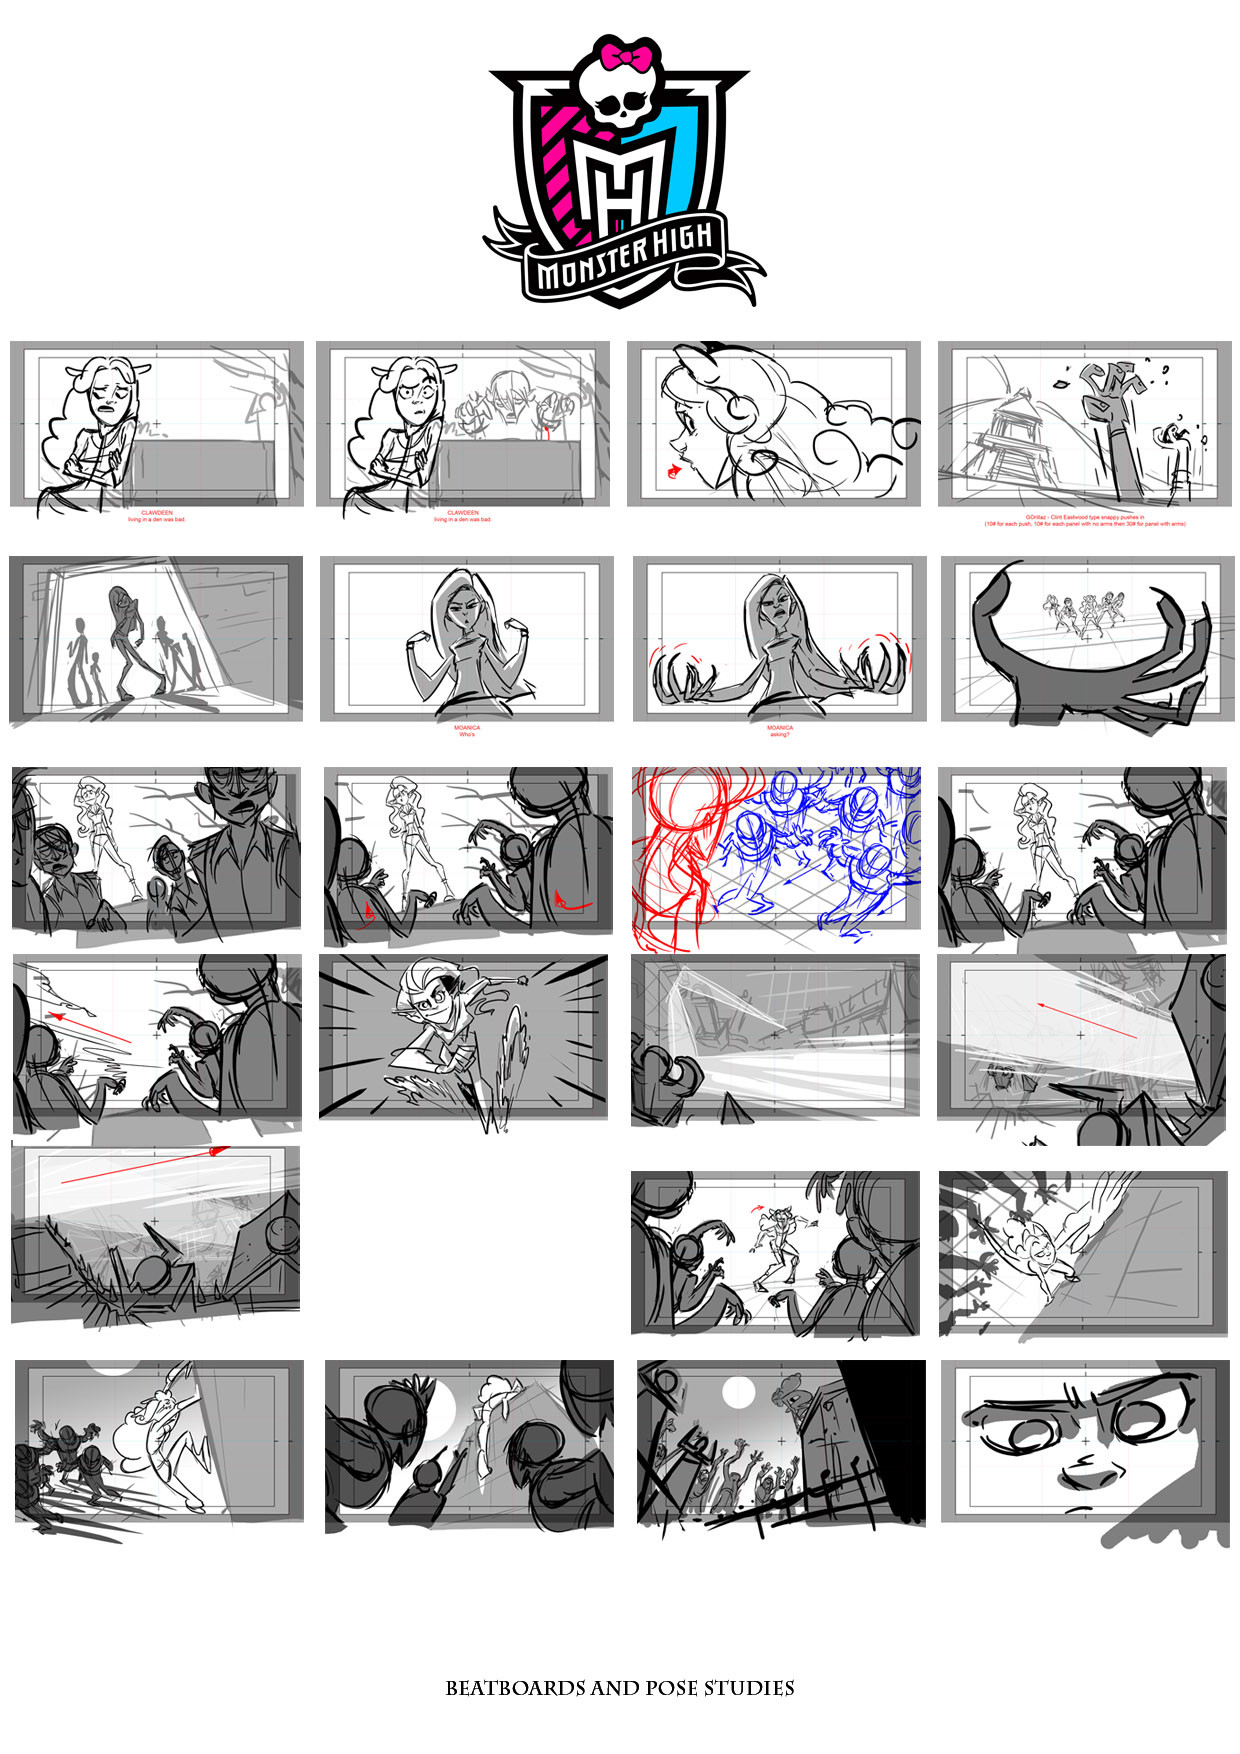 Miklos weigert storyboard page 09